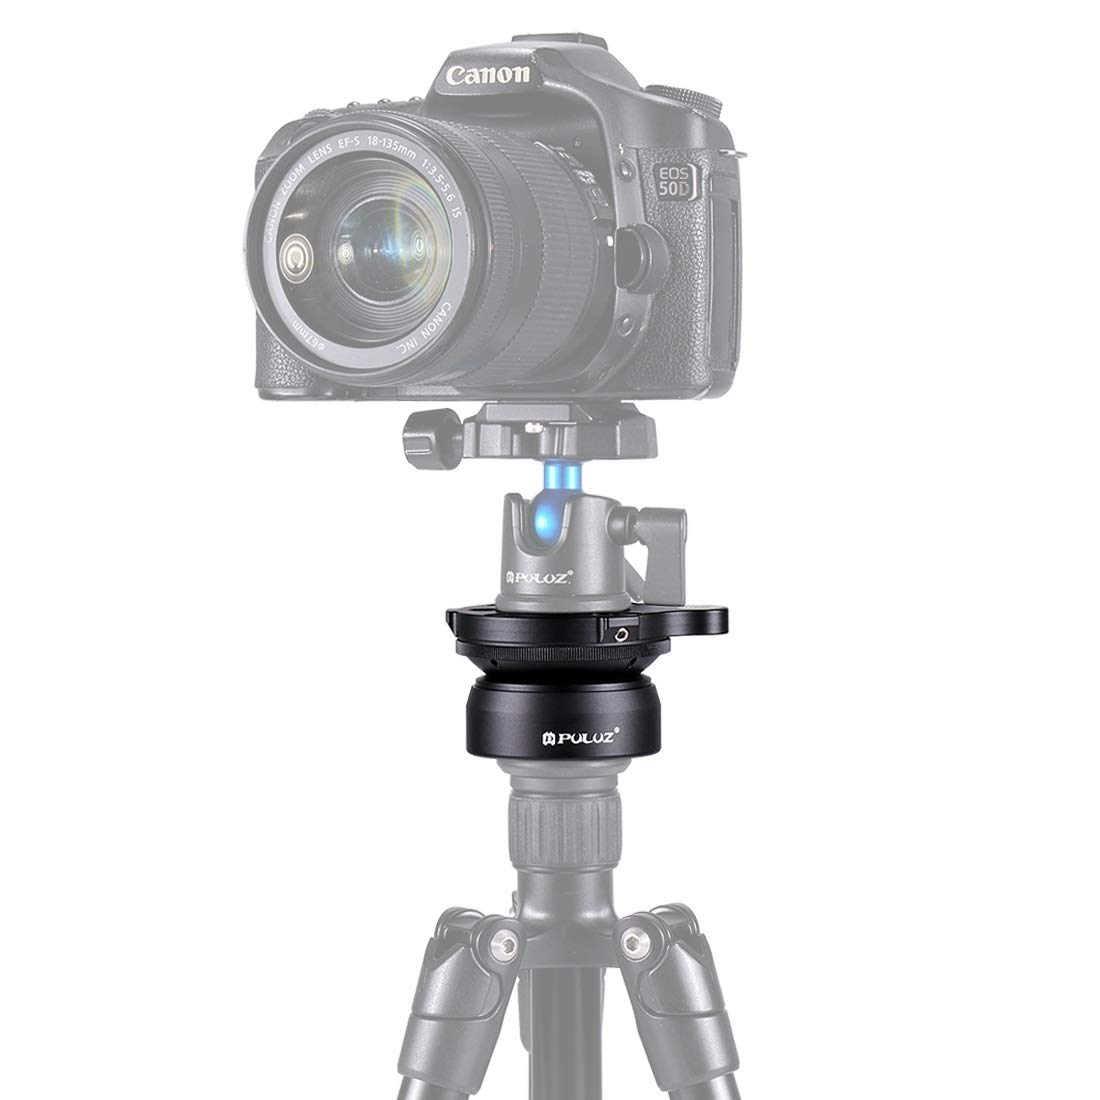 CAOMING 3/8 Inch Thread Dome Professional Tripod Leveling Head Base with Bubble Level Durable by CAOMING